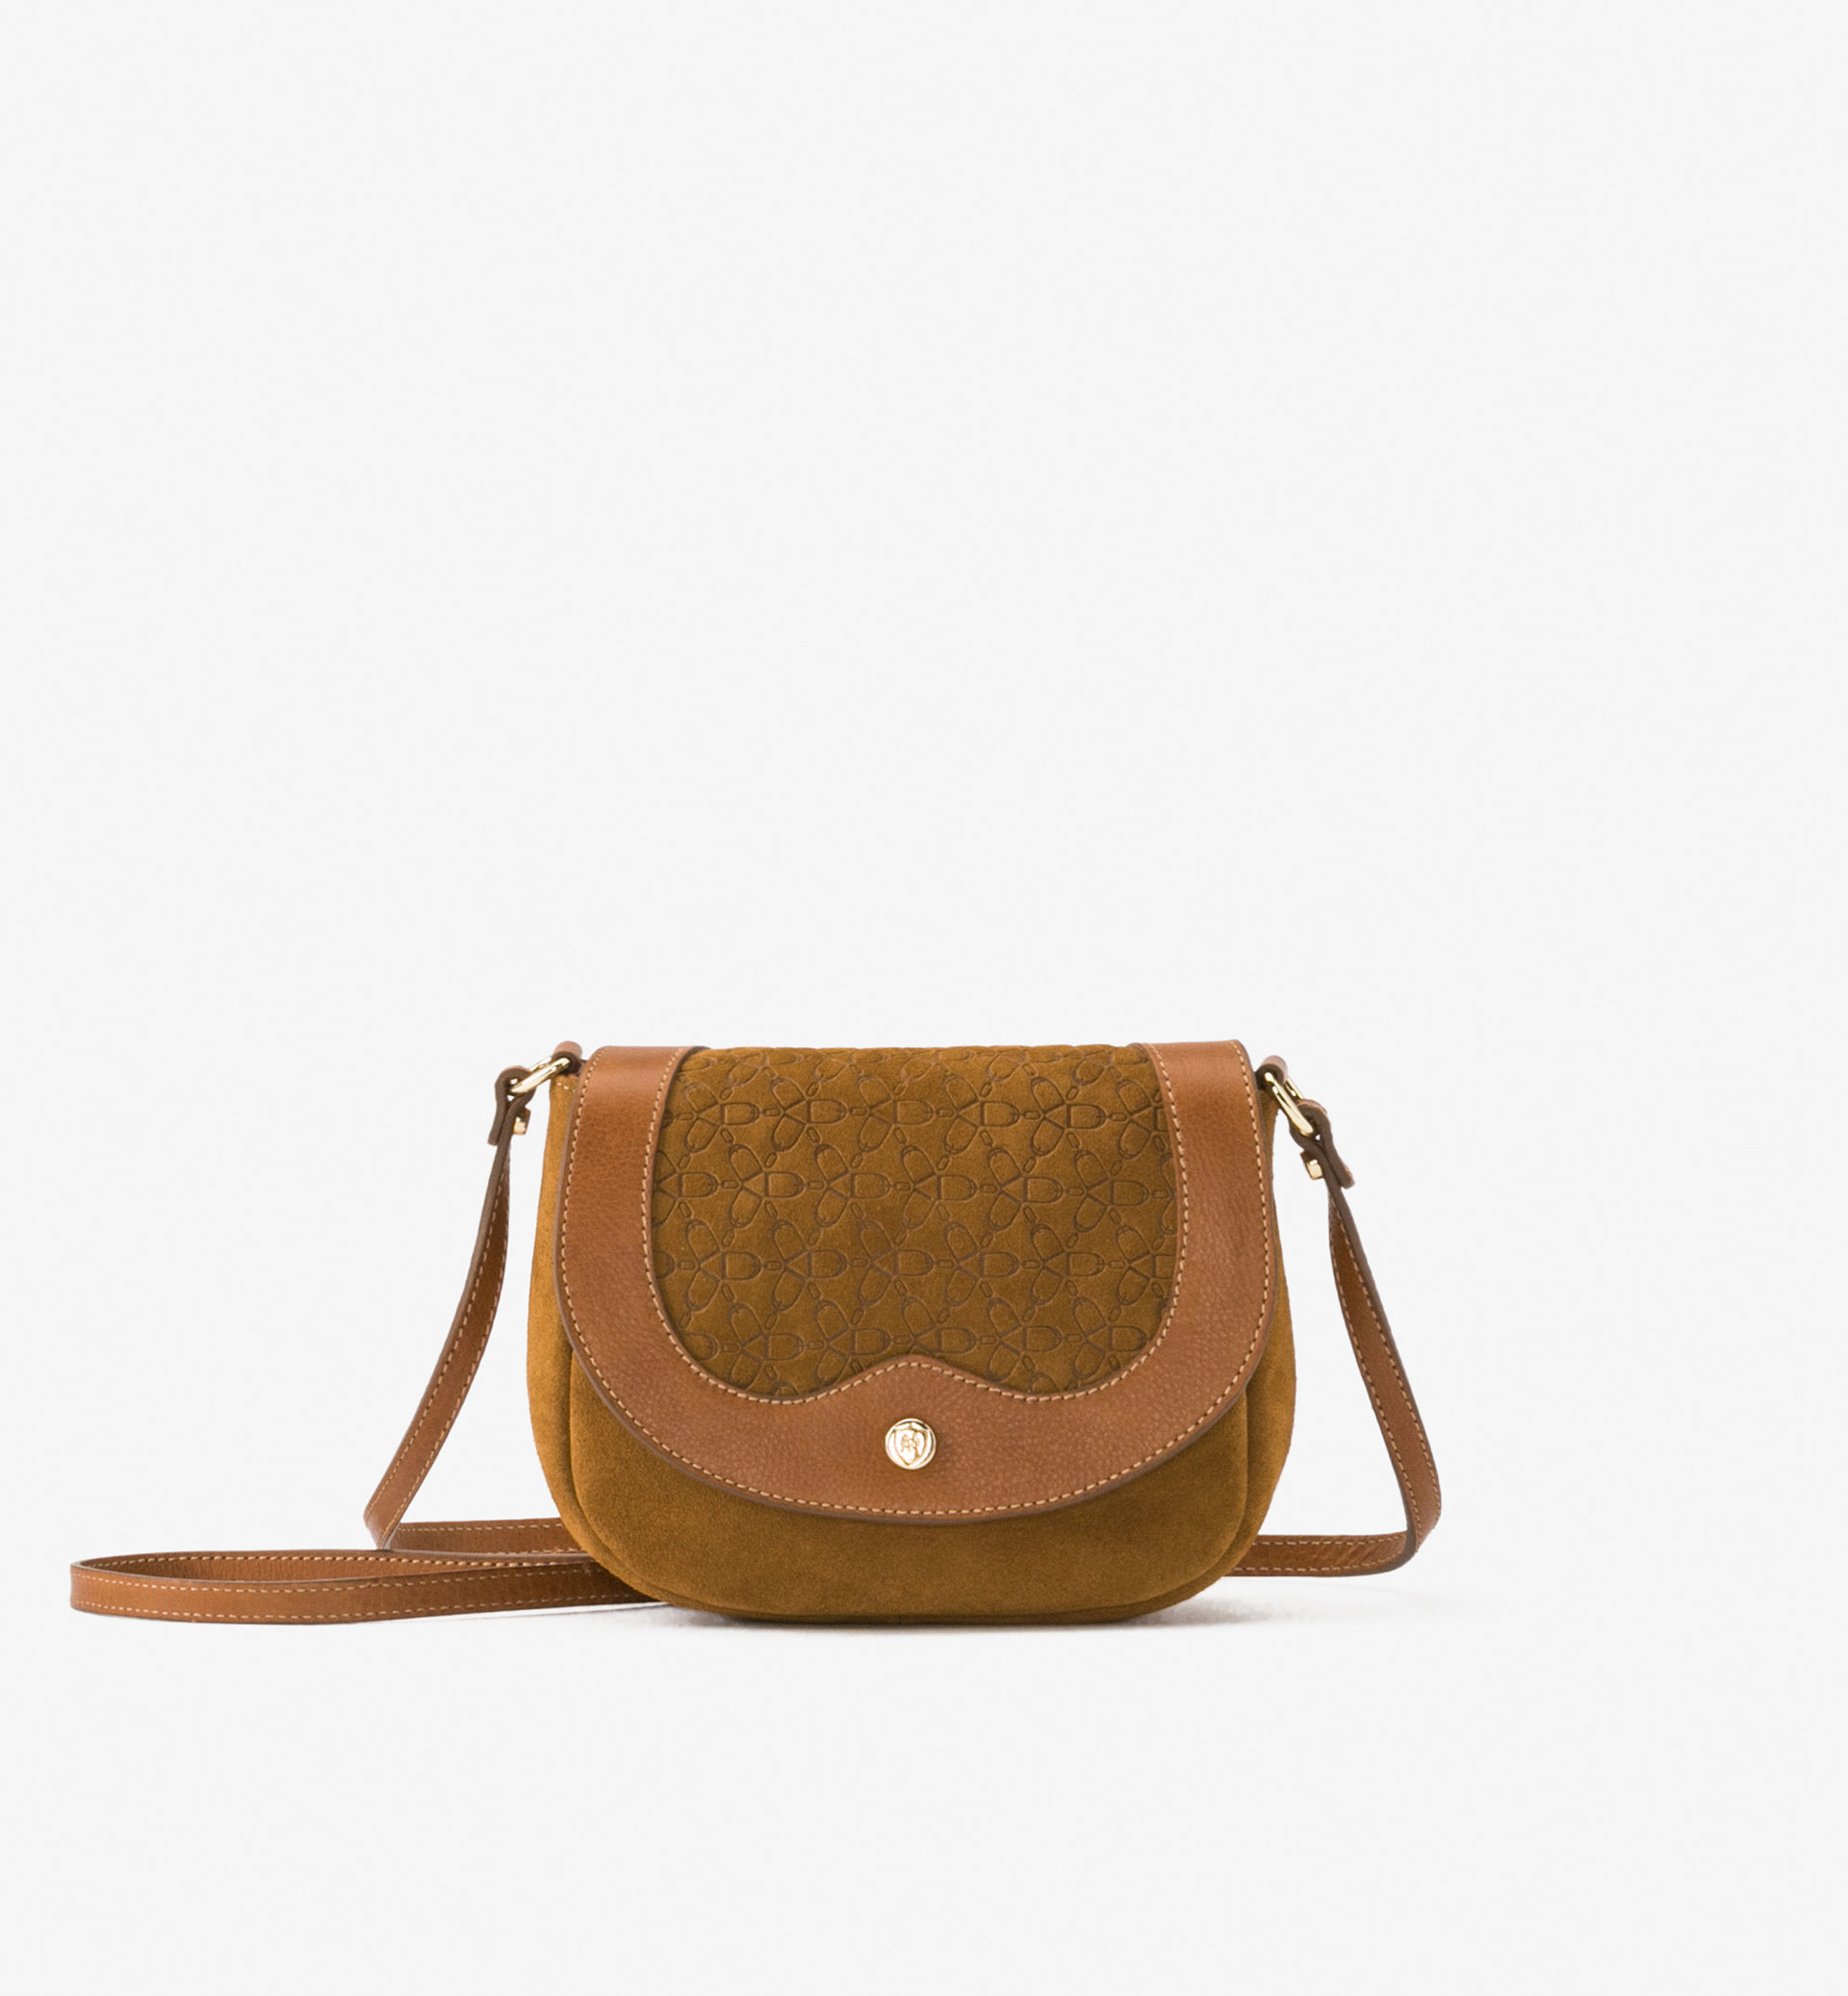 LIMITED EDITION EQUESTRIAN DETAIL BAG